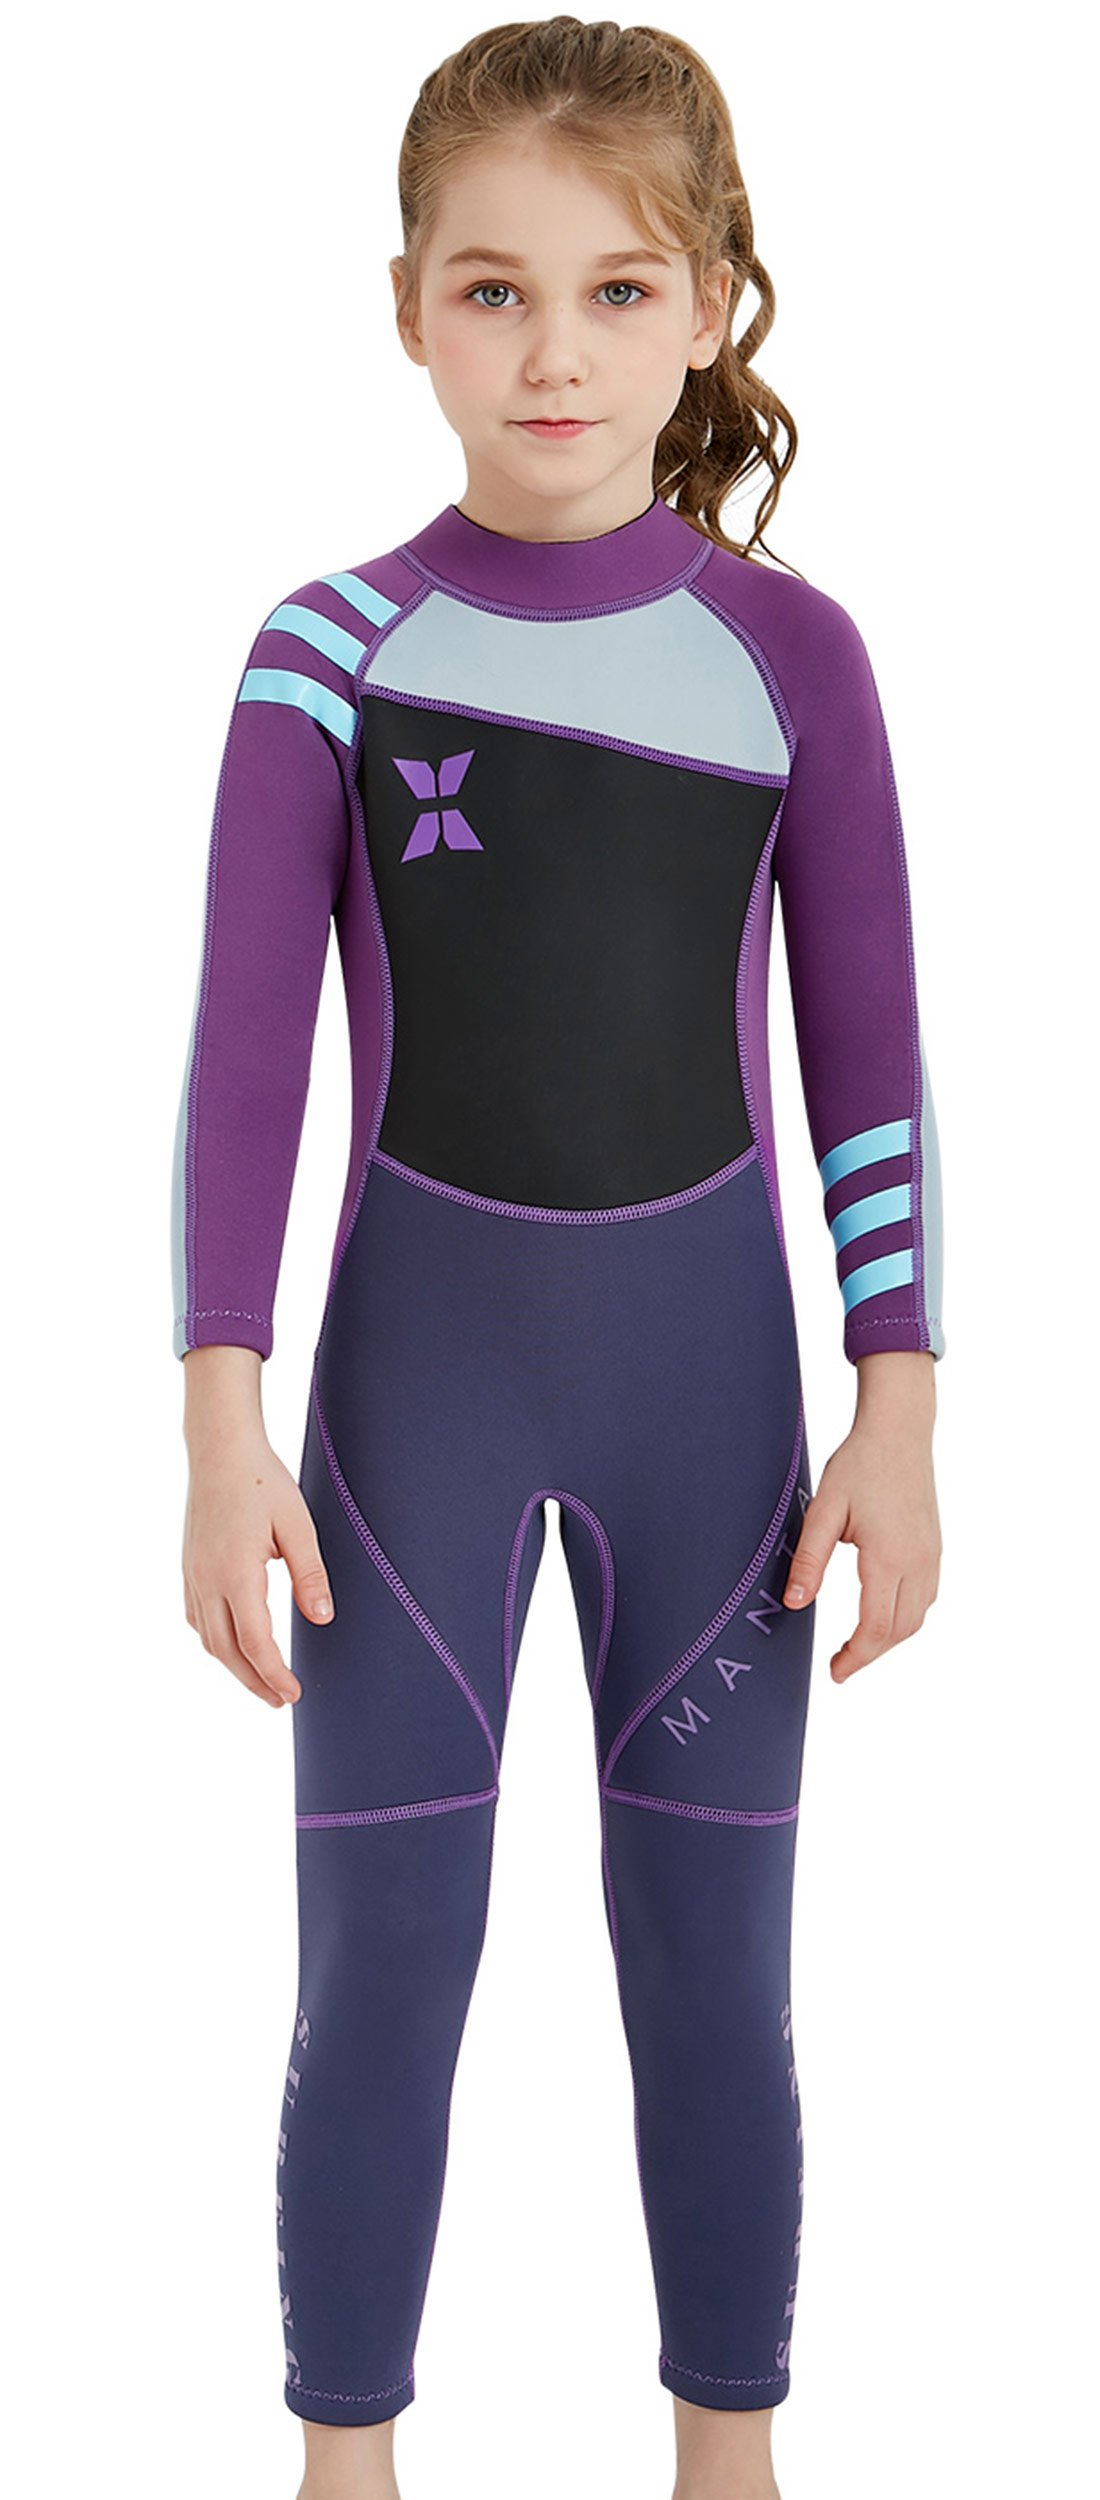 DIVE & SAIL Kids Long Sleeve Swimsuit Thermal Warm Full Suit UPF 50+ Wetsuit Diving Swmming Suit Swimwear Purple XL by DIVE & SAIL